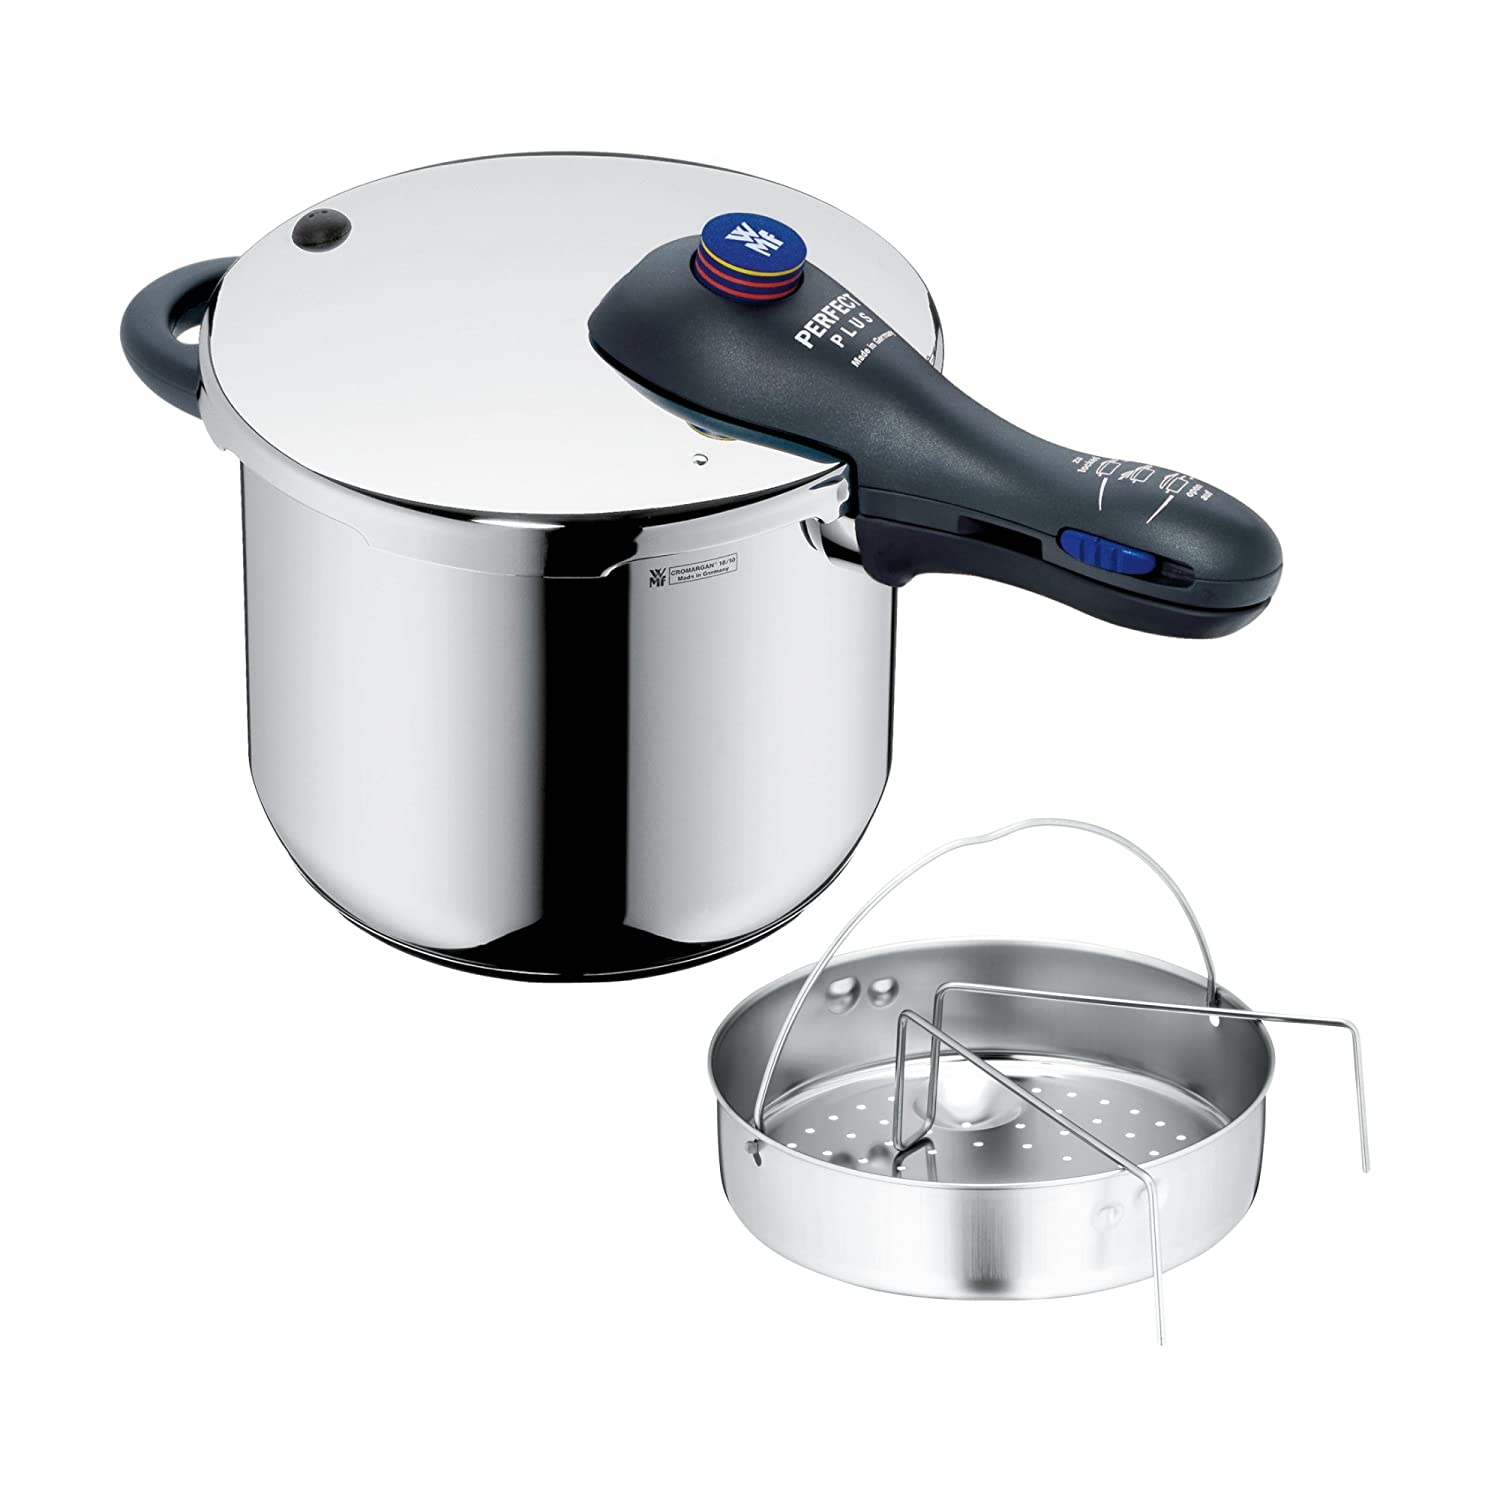 WMF Perfect Plus Pressure cooker 6,5l with insert Ø 22cm Made in Germany internal scaling Cromargan stainless steel suitable for induction 07.9313.6040 Cookware Pressure Cookers